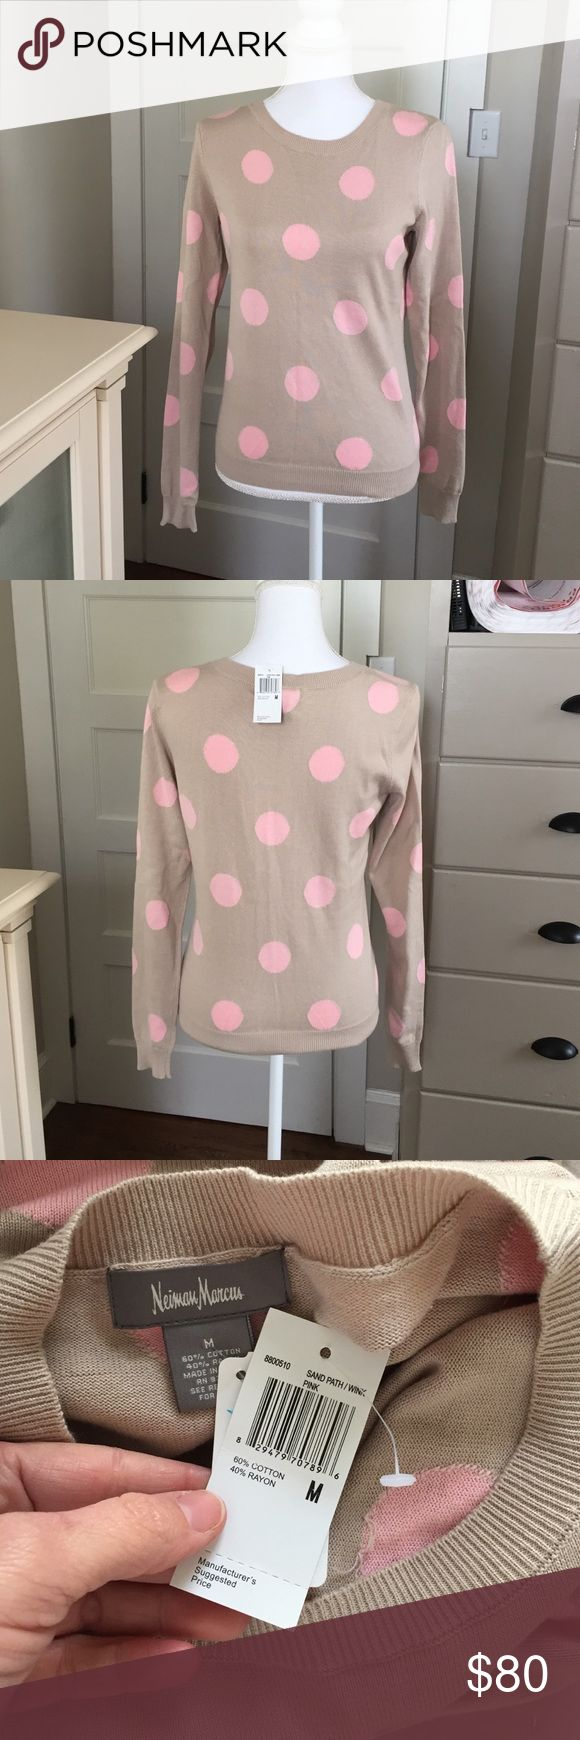 NWT Neiman Marcus Medium polka dot top NWT Neiman Marcus Medium polka dot top. Tan body with light pink polkadots!! Absolutely adorable. Supersweet comfy and flirty!!  Definitely runs small so that is the only reason I'm selling it!!!  I am usually a medium but this is definitely more of an extra small or small😊 Neiman Marcus Tops